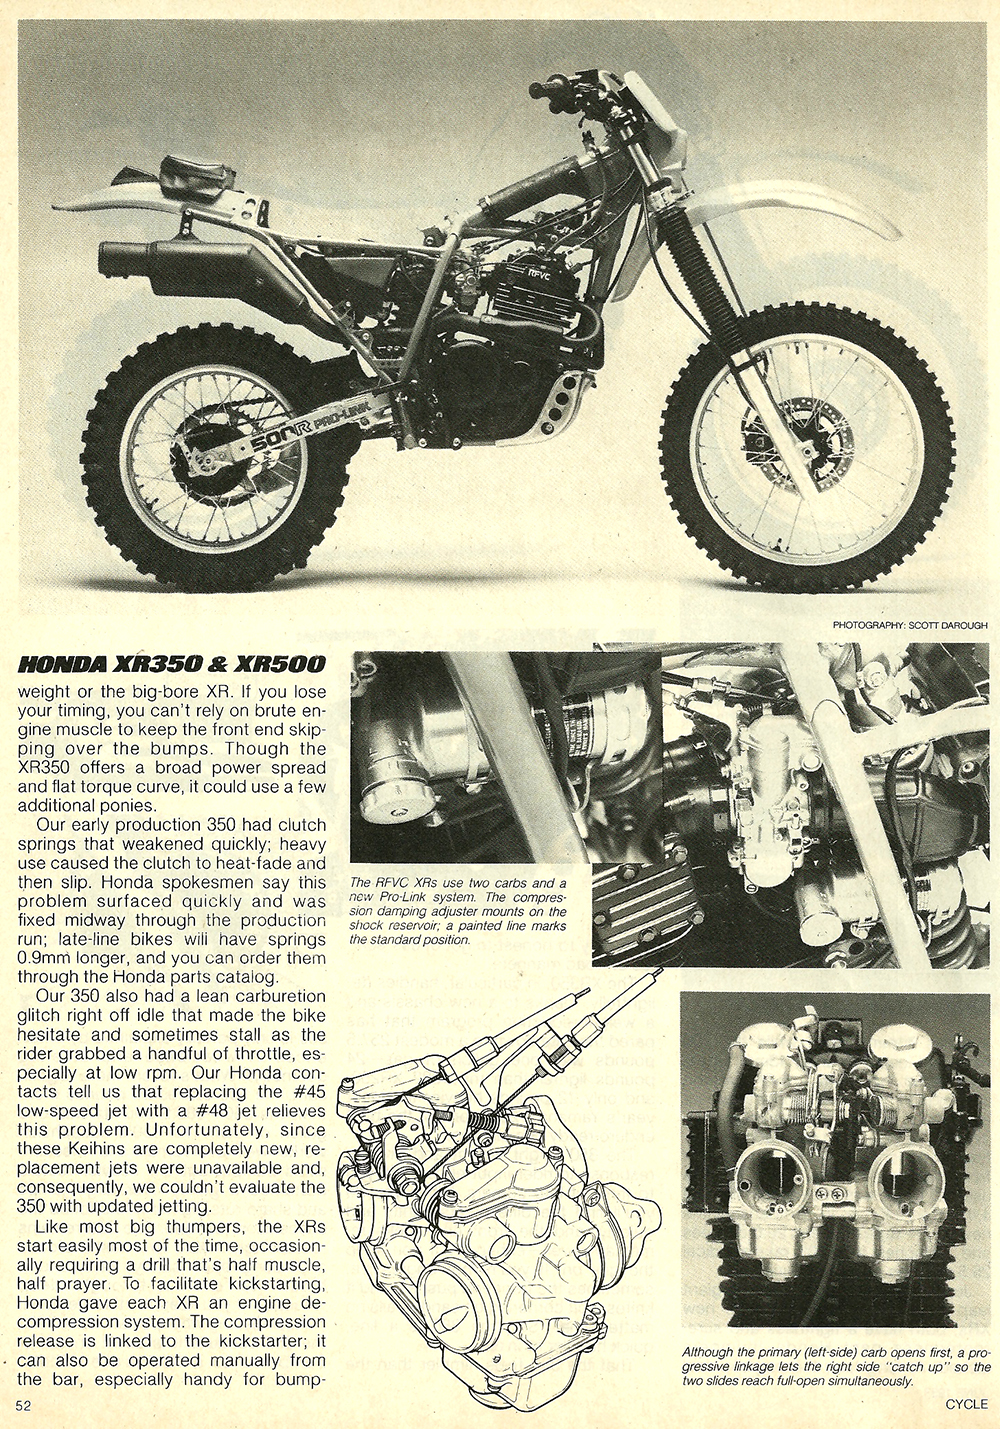 Garage Honda Sion 1983 Honda Xr350r And Xr500r Road Test Ye Olde Cycle Shoppe